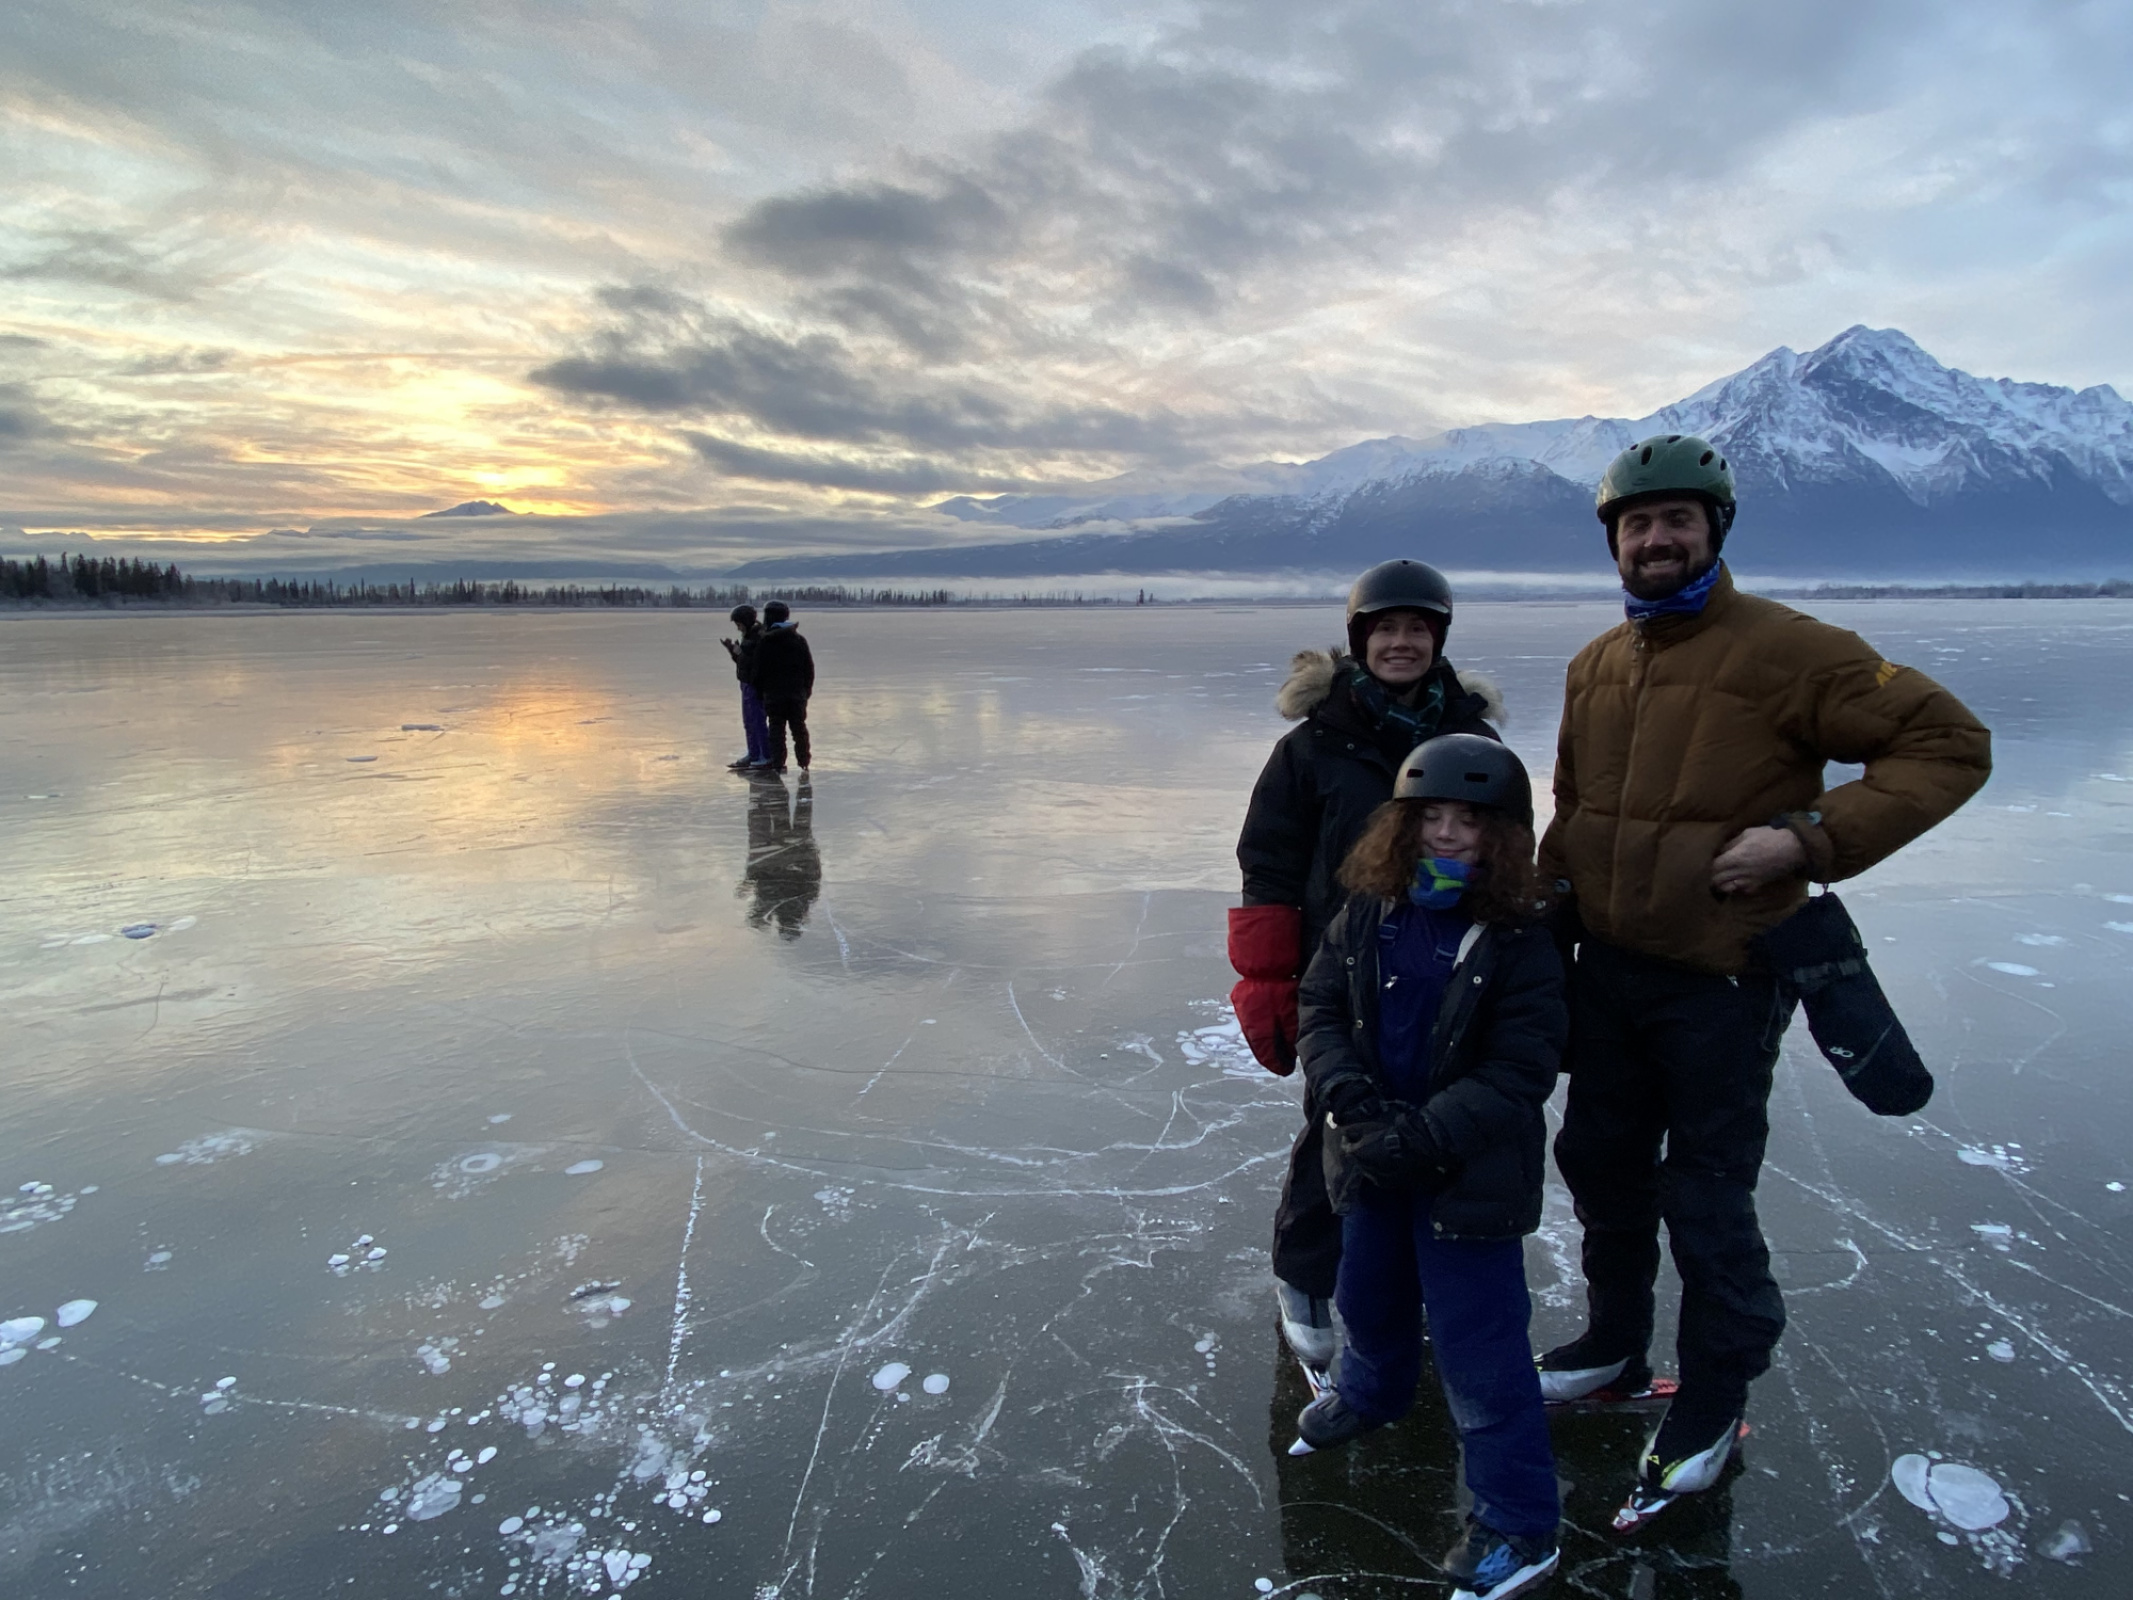 Holiday 2019 wild ice family skate with the Taygan family on Mud Lake, Knik River Valley.  We could see fish swimming under the ice.  My kids in the background looking at a phone, of course.